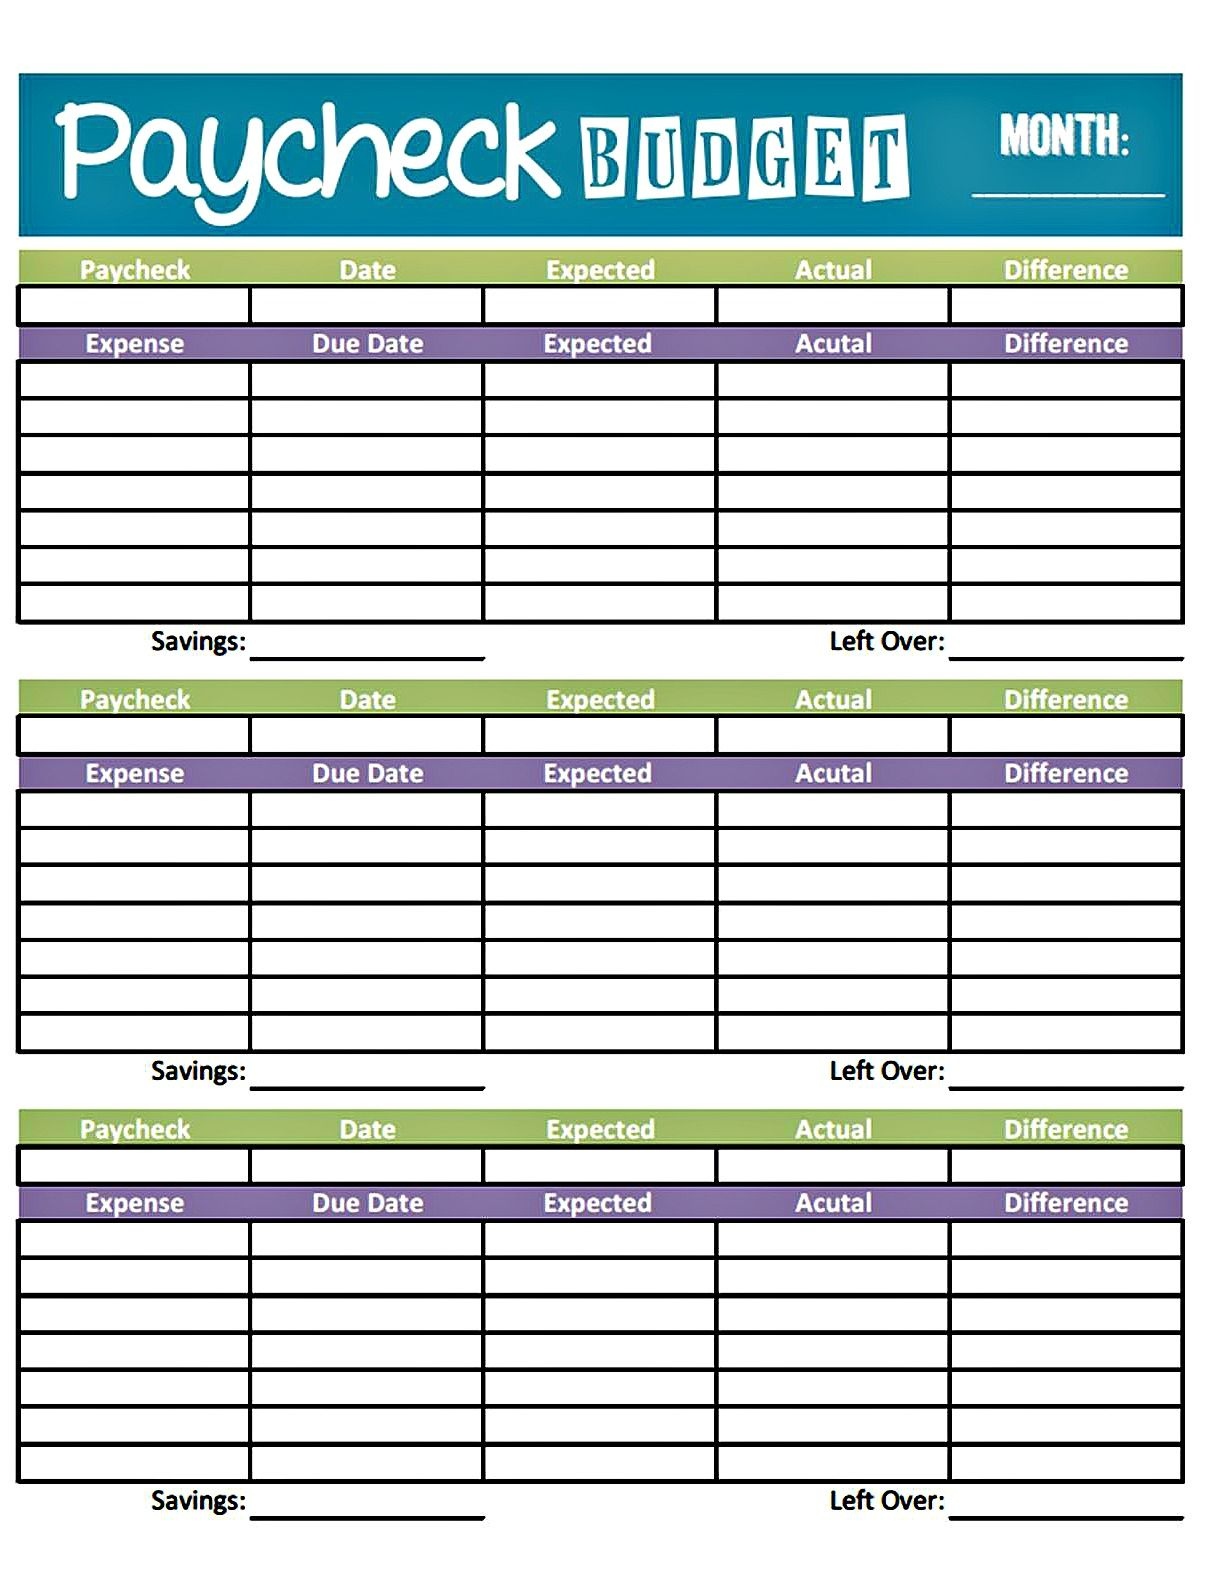 worksheet Free Online Budget Worksheet bonfires and wine livin paycheck to free printable budget form organizing pinterest beautiful weekly bud